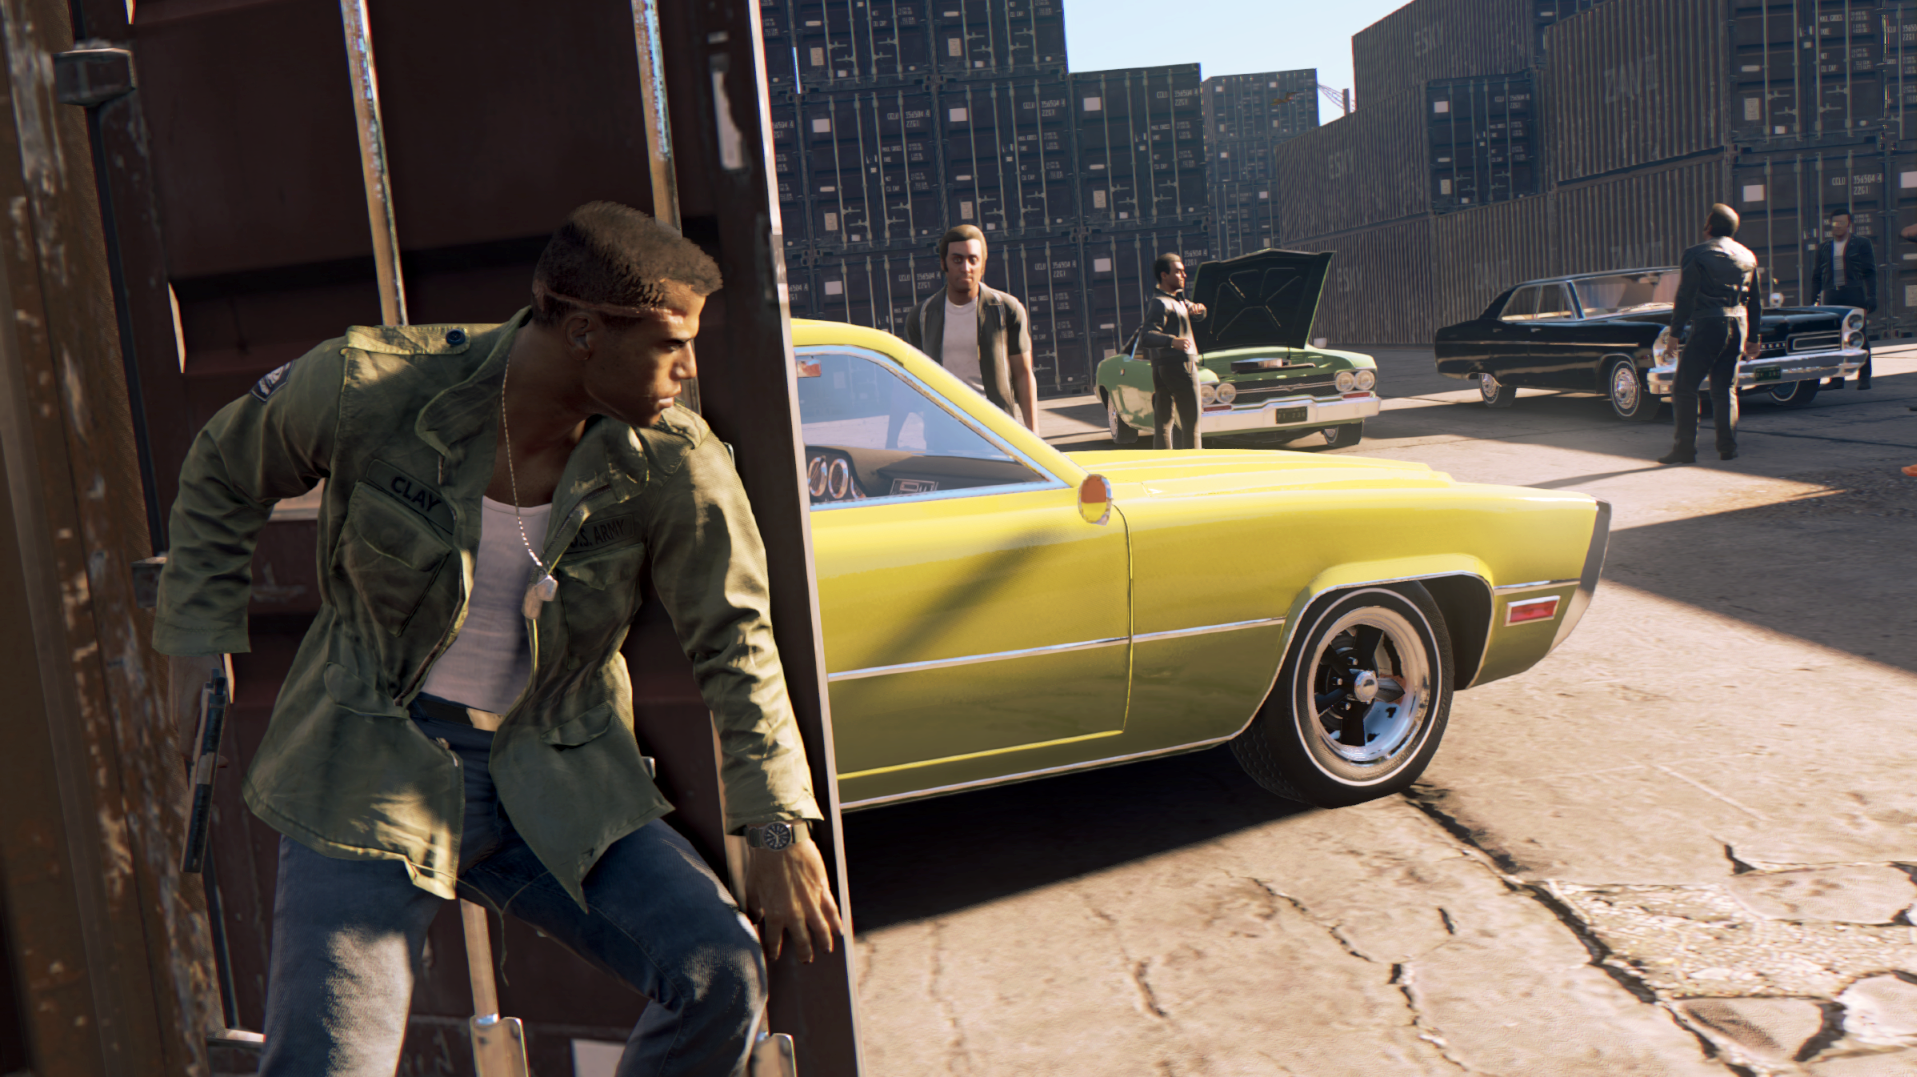 'One of the reasons why I came to 2K was because they're not afraid to take these kind of creative risks,' says Mafia III creative director Haden Blackman. Courtesy of 2K Games.